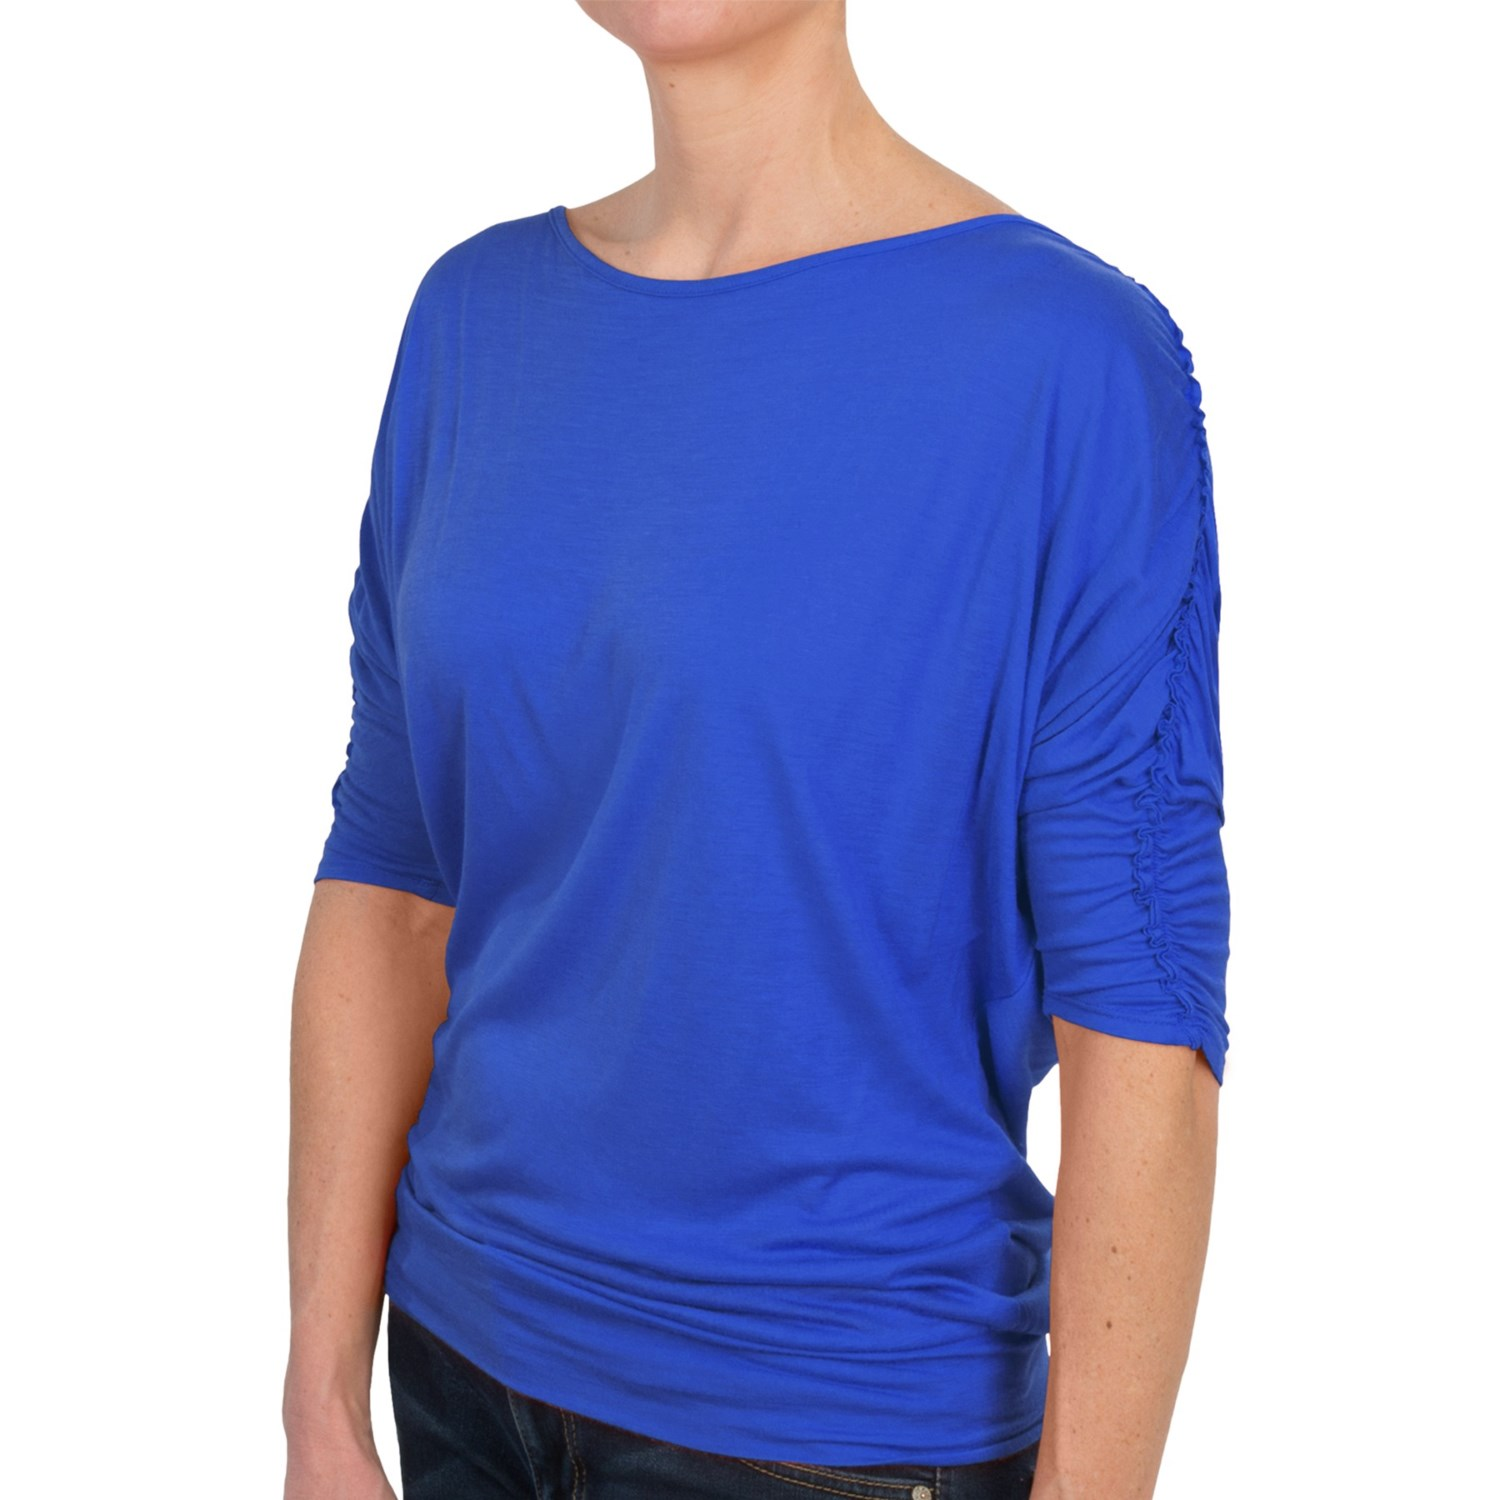 Joan vass ballet neck shirt 3 4 sleeve for women for Ballet neck tee shirts